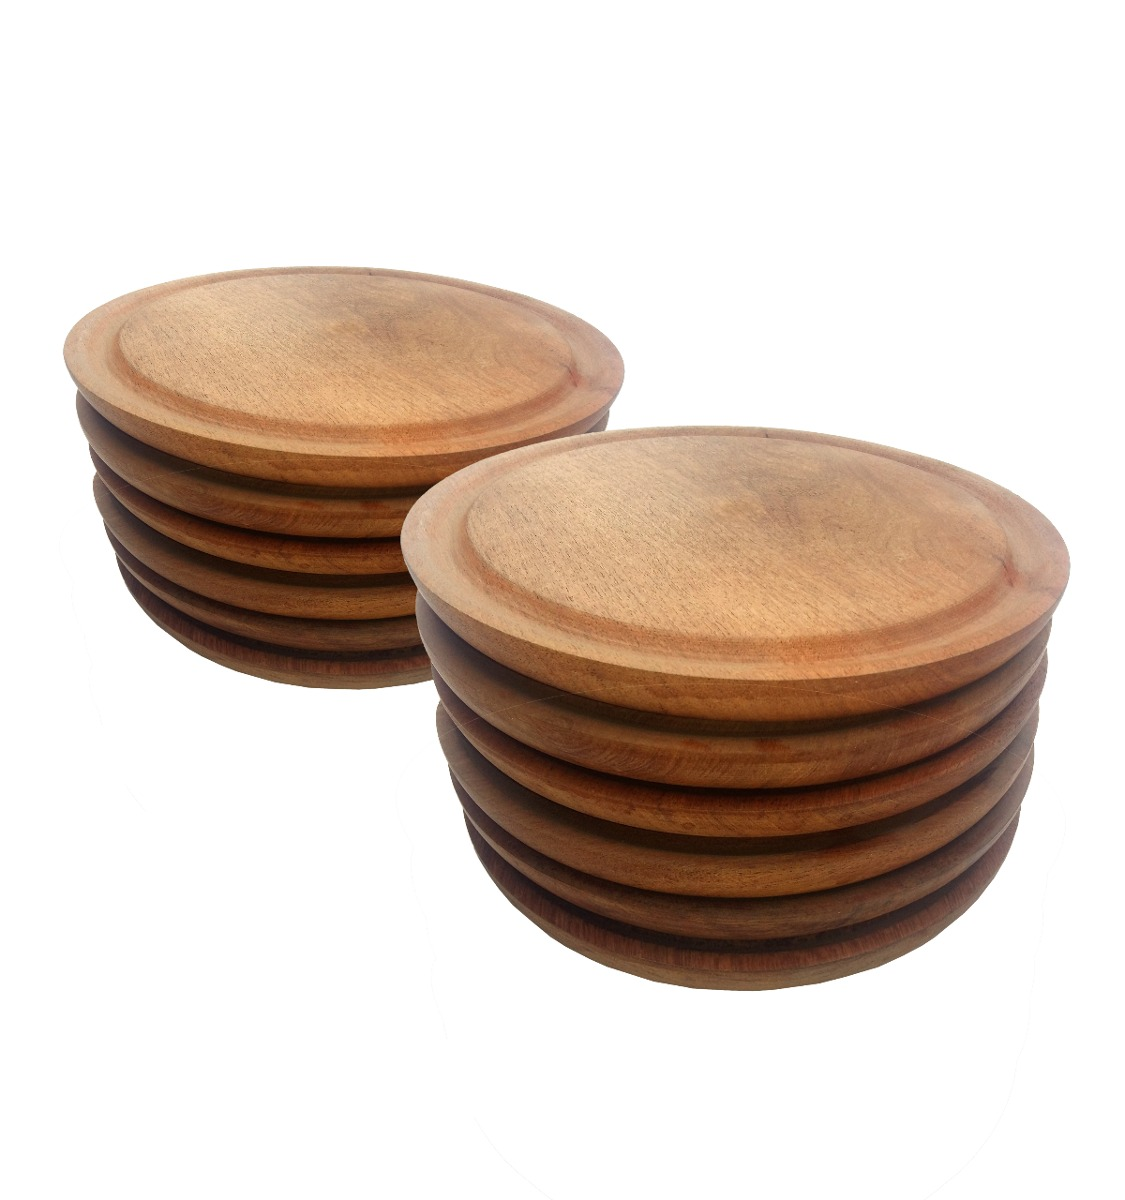 Wooden Plates £6.50 each or Set of 4 Wooden Plates £20 - Food is tasty when it is served in wooden plates! These are the perfect plate for a traditional Asado barbecue. They can be ordered as a set or individually.The plates have a carved recess surround to prevent any juices from running over the edge of the plate, just perfect for a juicy steak!!!!